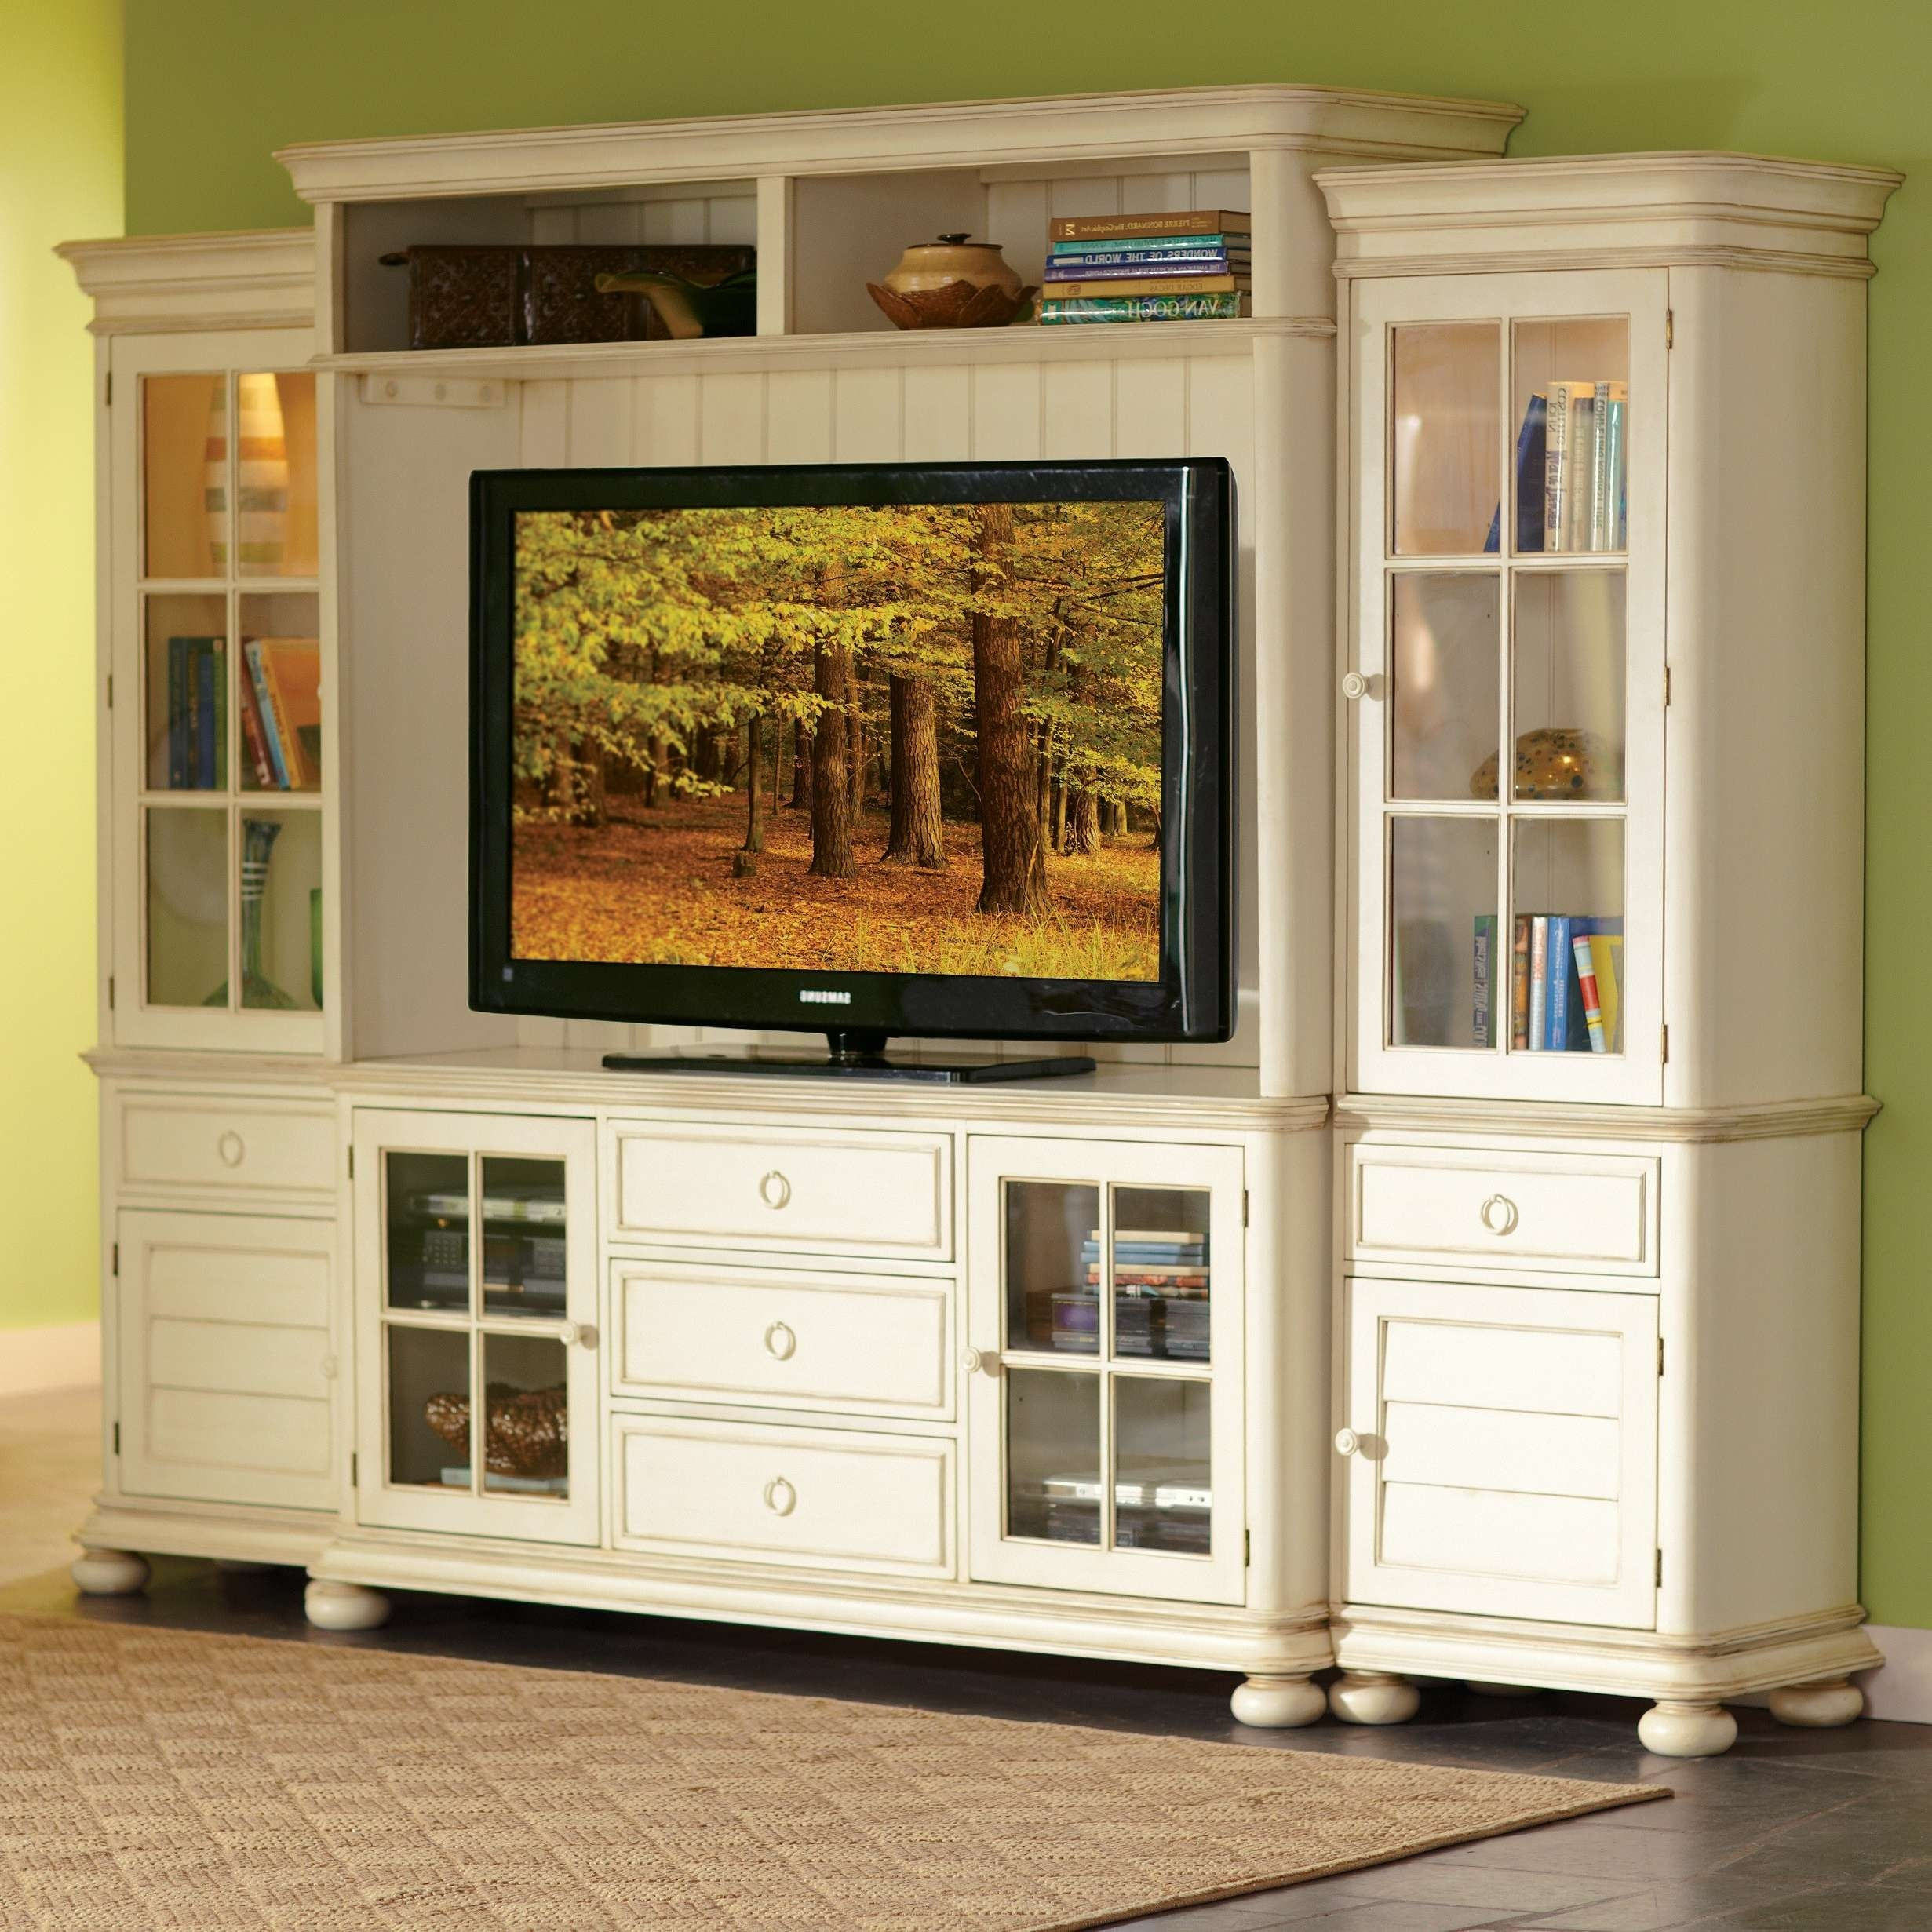 Vintage White Mahogany Wood Media Cabinet With Glass Doors Storage Within Wooden Tv Cabinets With Glass Doors (View 9 of 20)